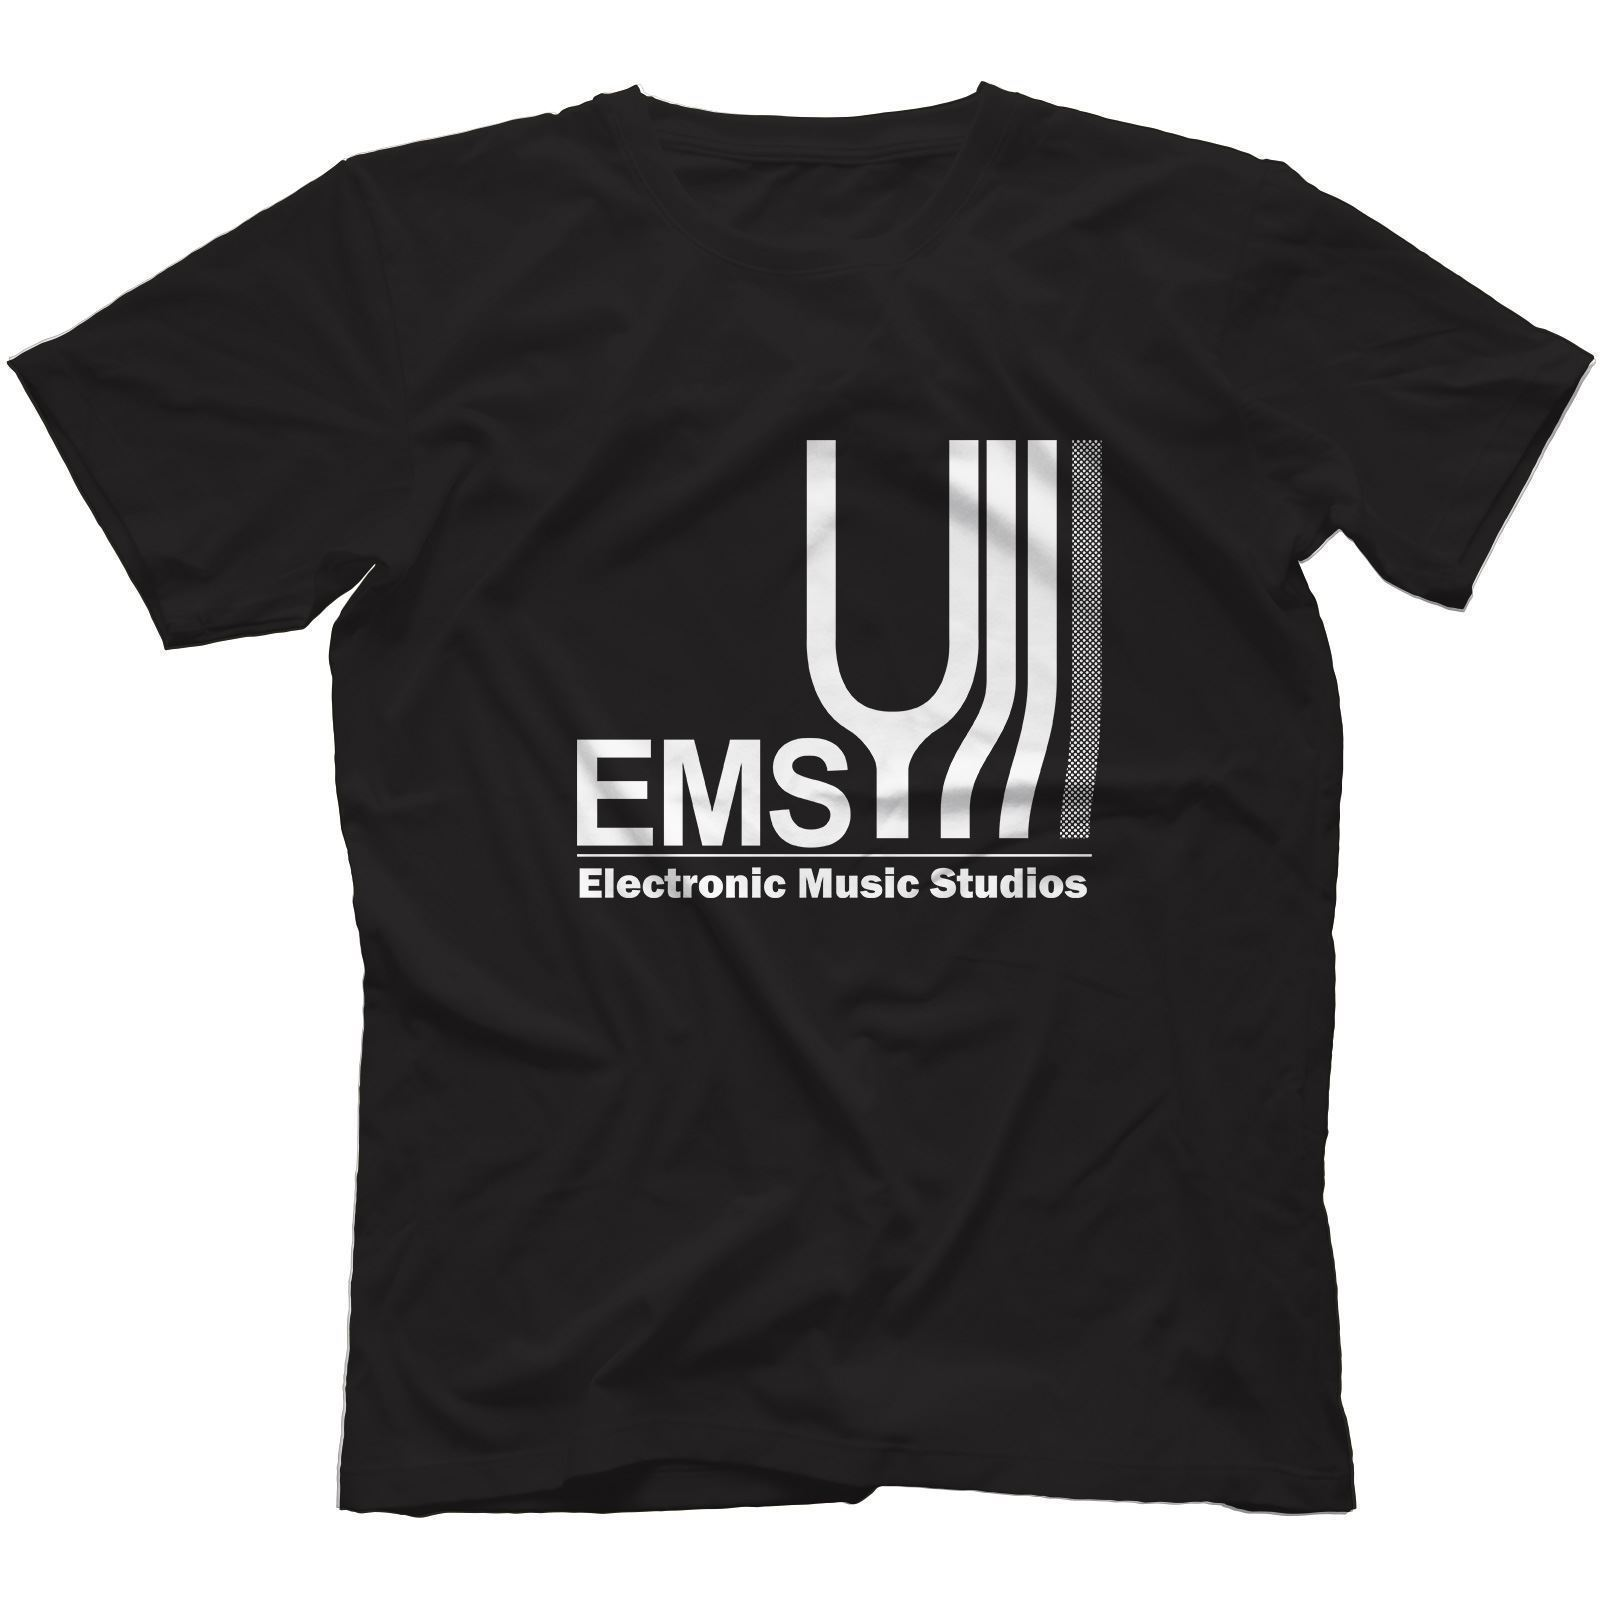 Electronic Music Studios T-Shirt 100% Cotton Synthi Aks Ems Retro Synth VCS3 Harajuku Cool T Shirt Homme Normal Dress